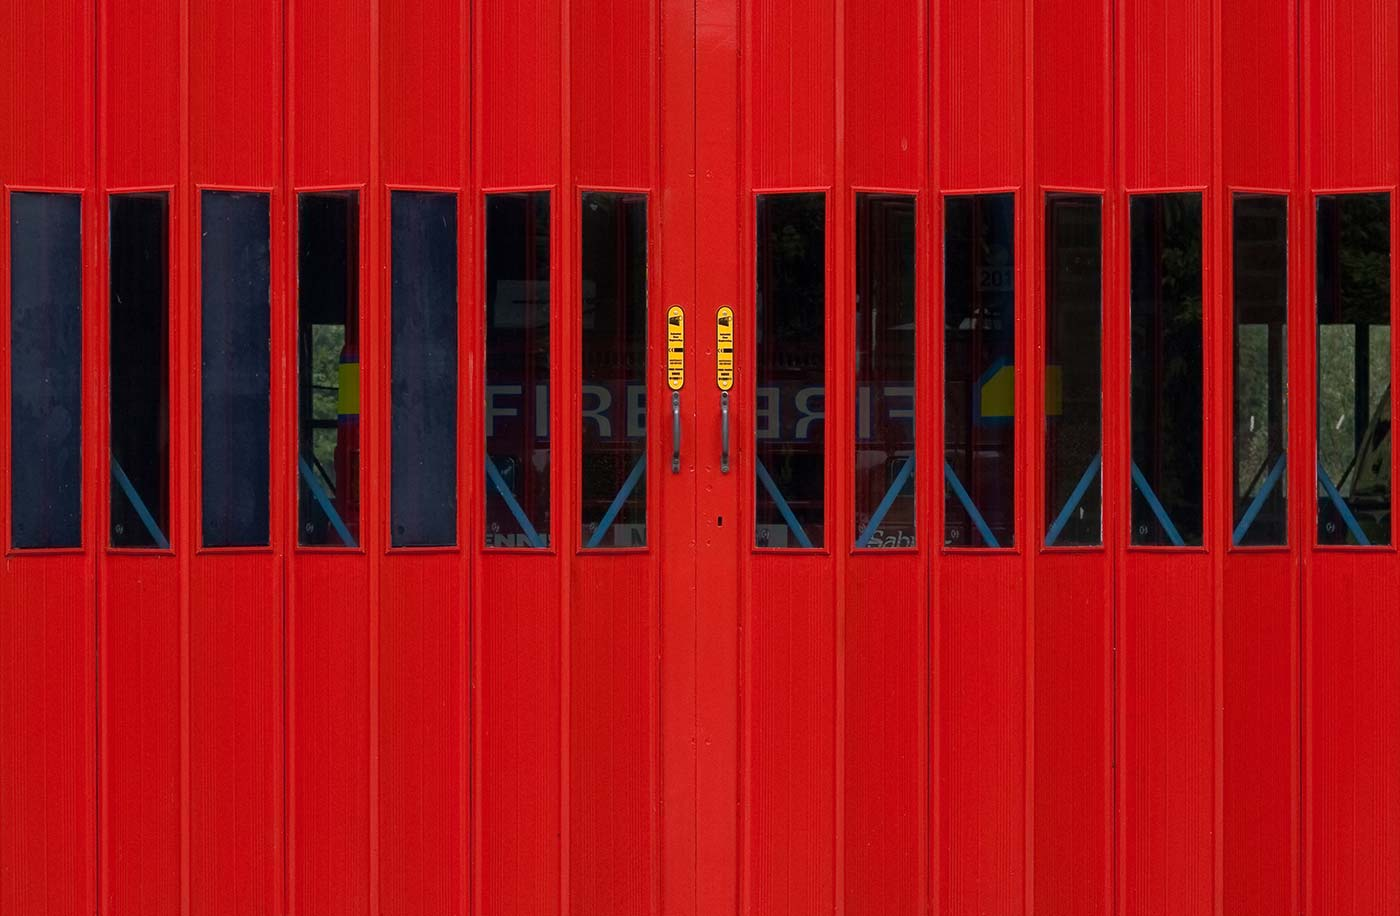 Firehall door with firetruck waiting to respond